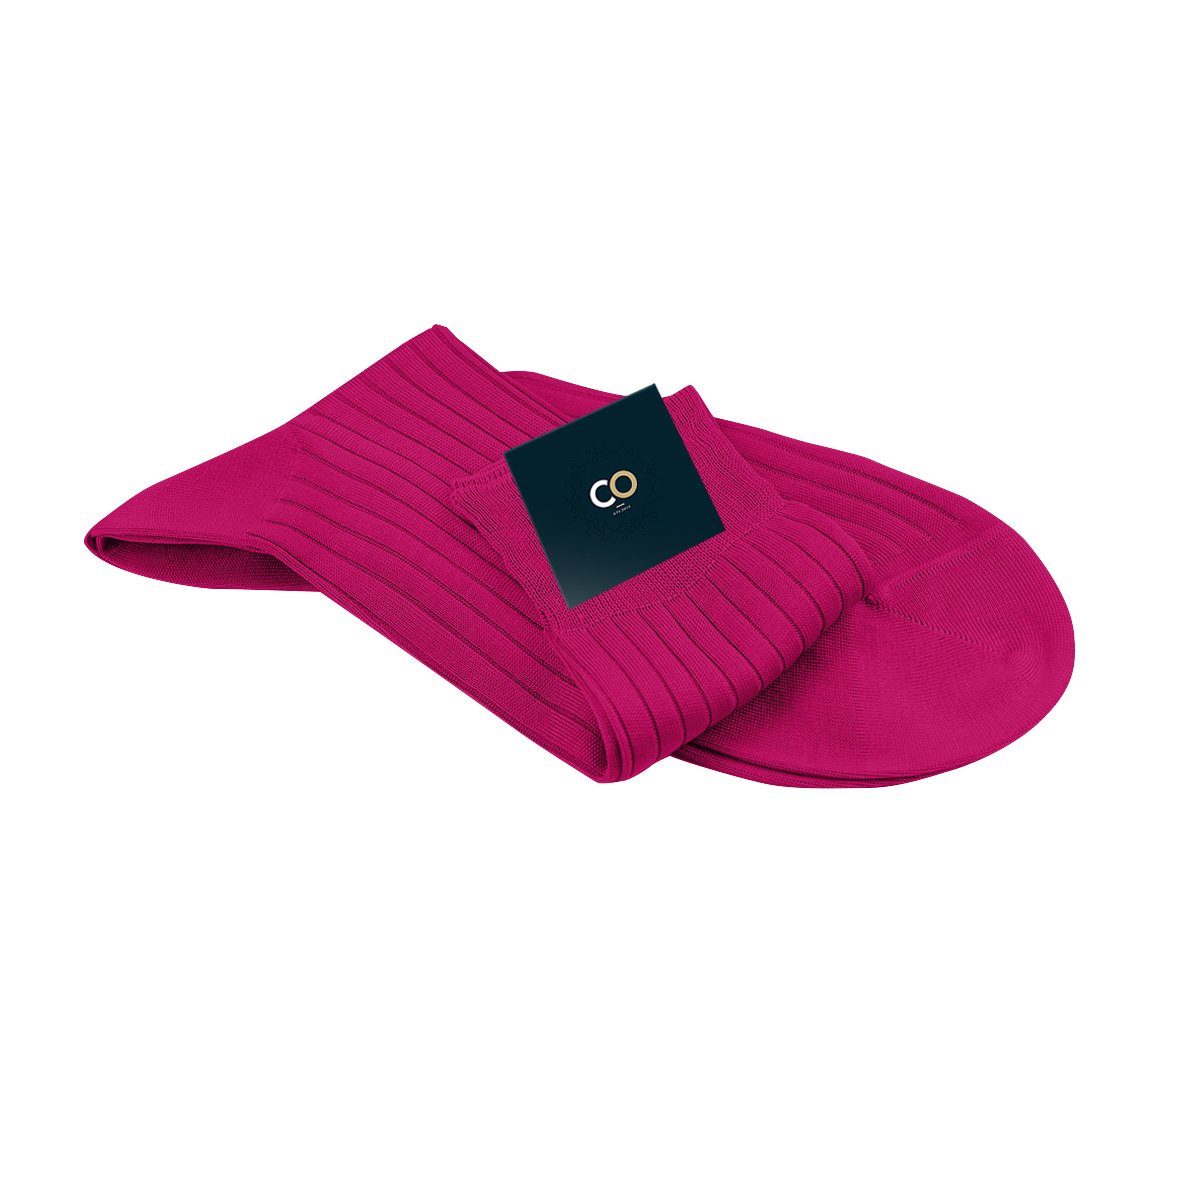 Chaussettes Fuxia, simplement fuchsia